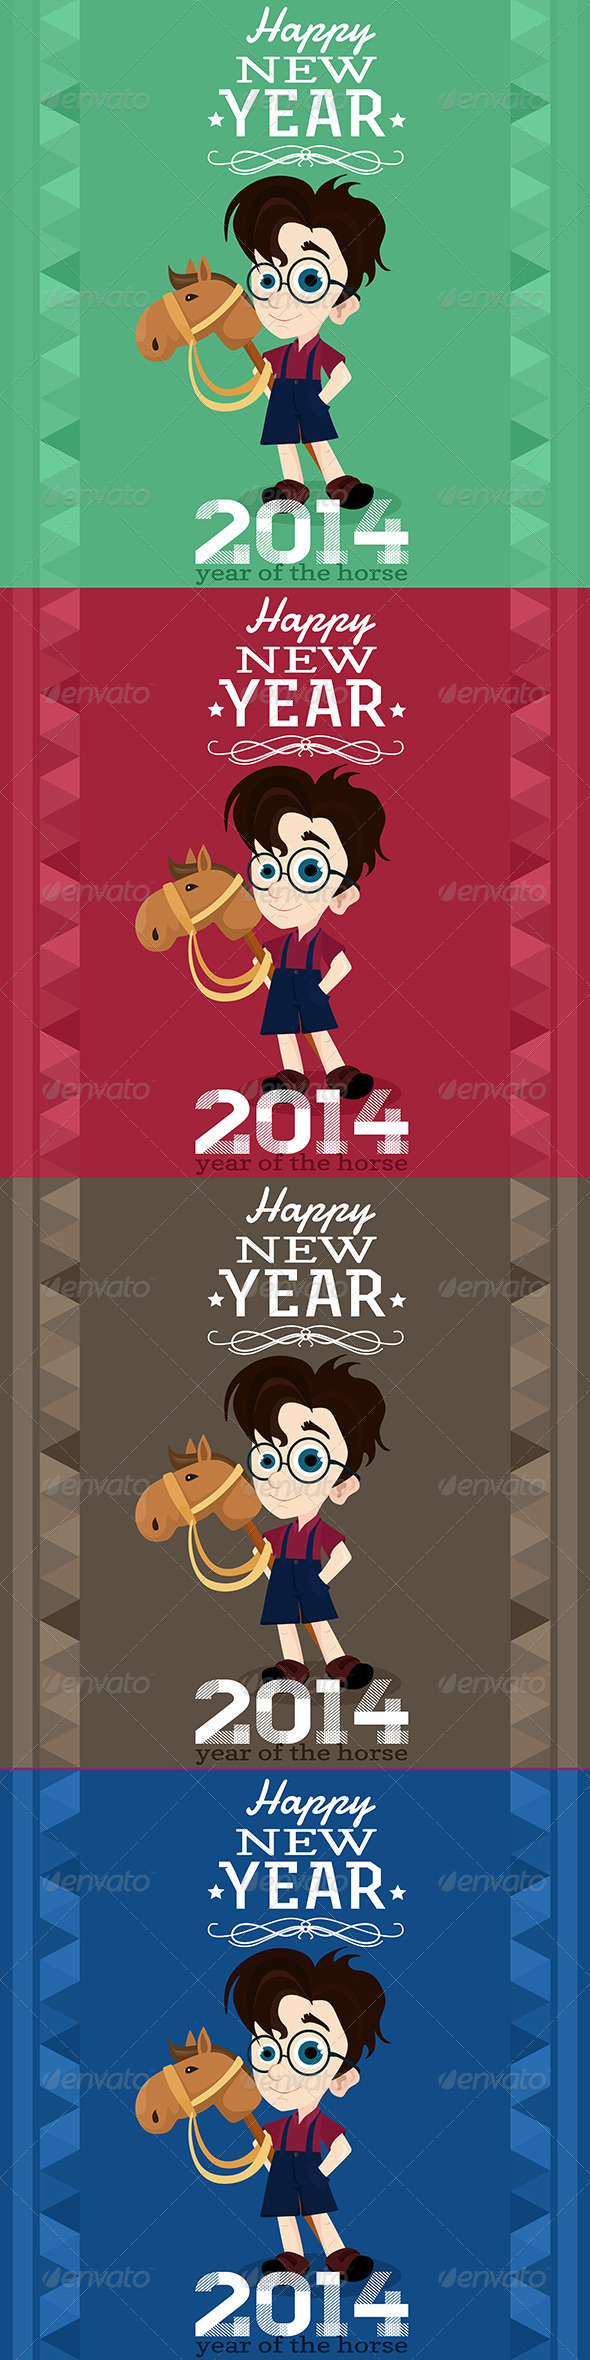 2014 Greeting Card, Year of the Horse - New Year Seasons/Holidays